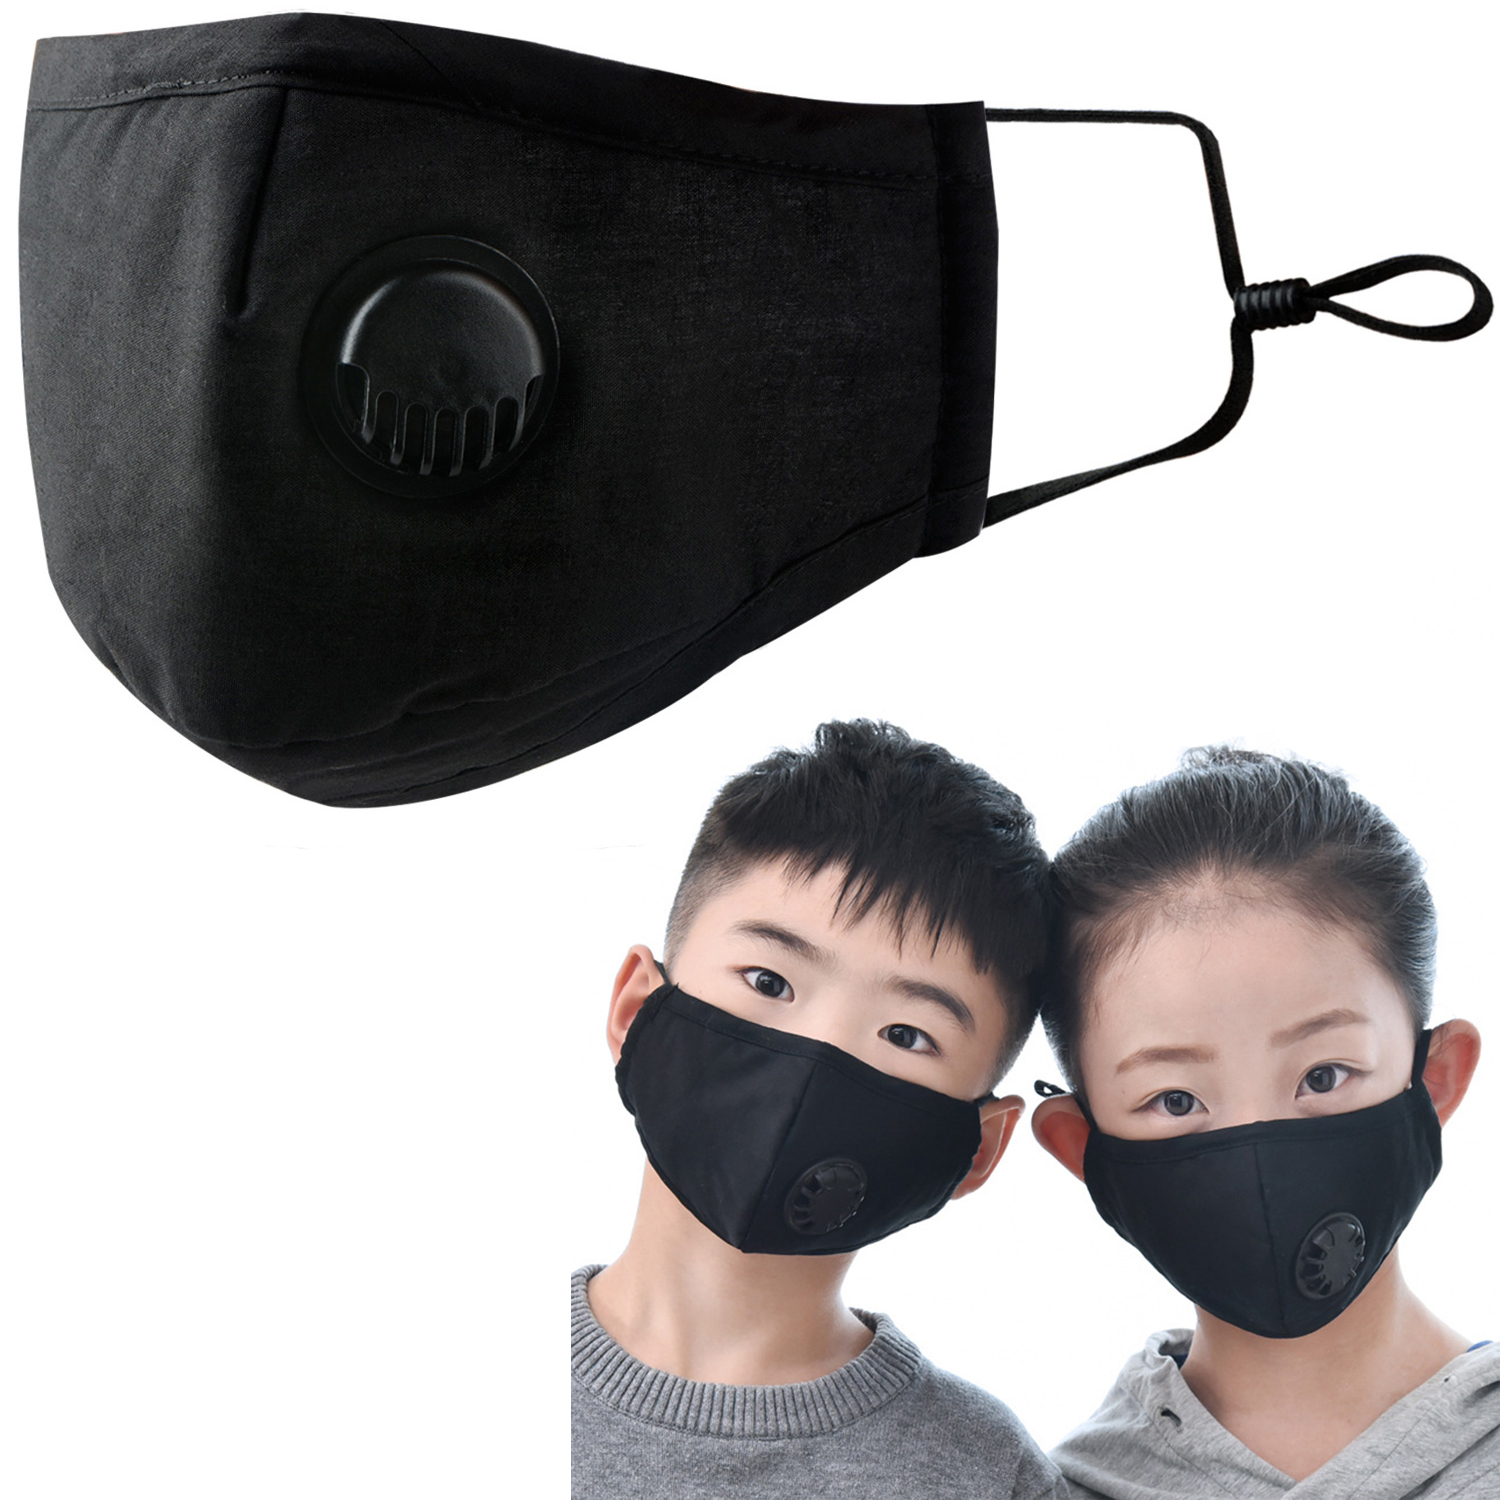 Face Mask Dust Mask Anti Pollution Mask PM2.5 Activated Carbon Filter Insert Breathable Valve Mask Mouth Cover For Children